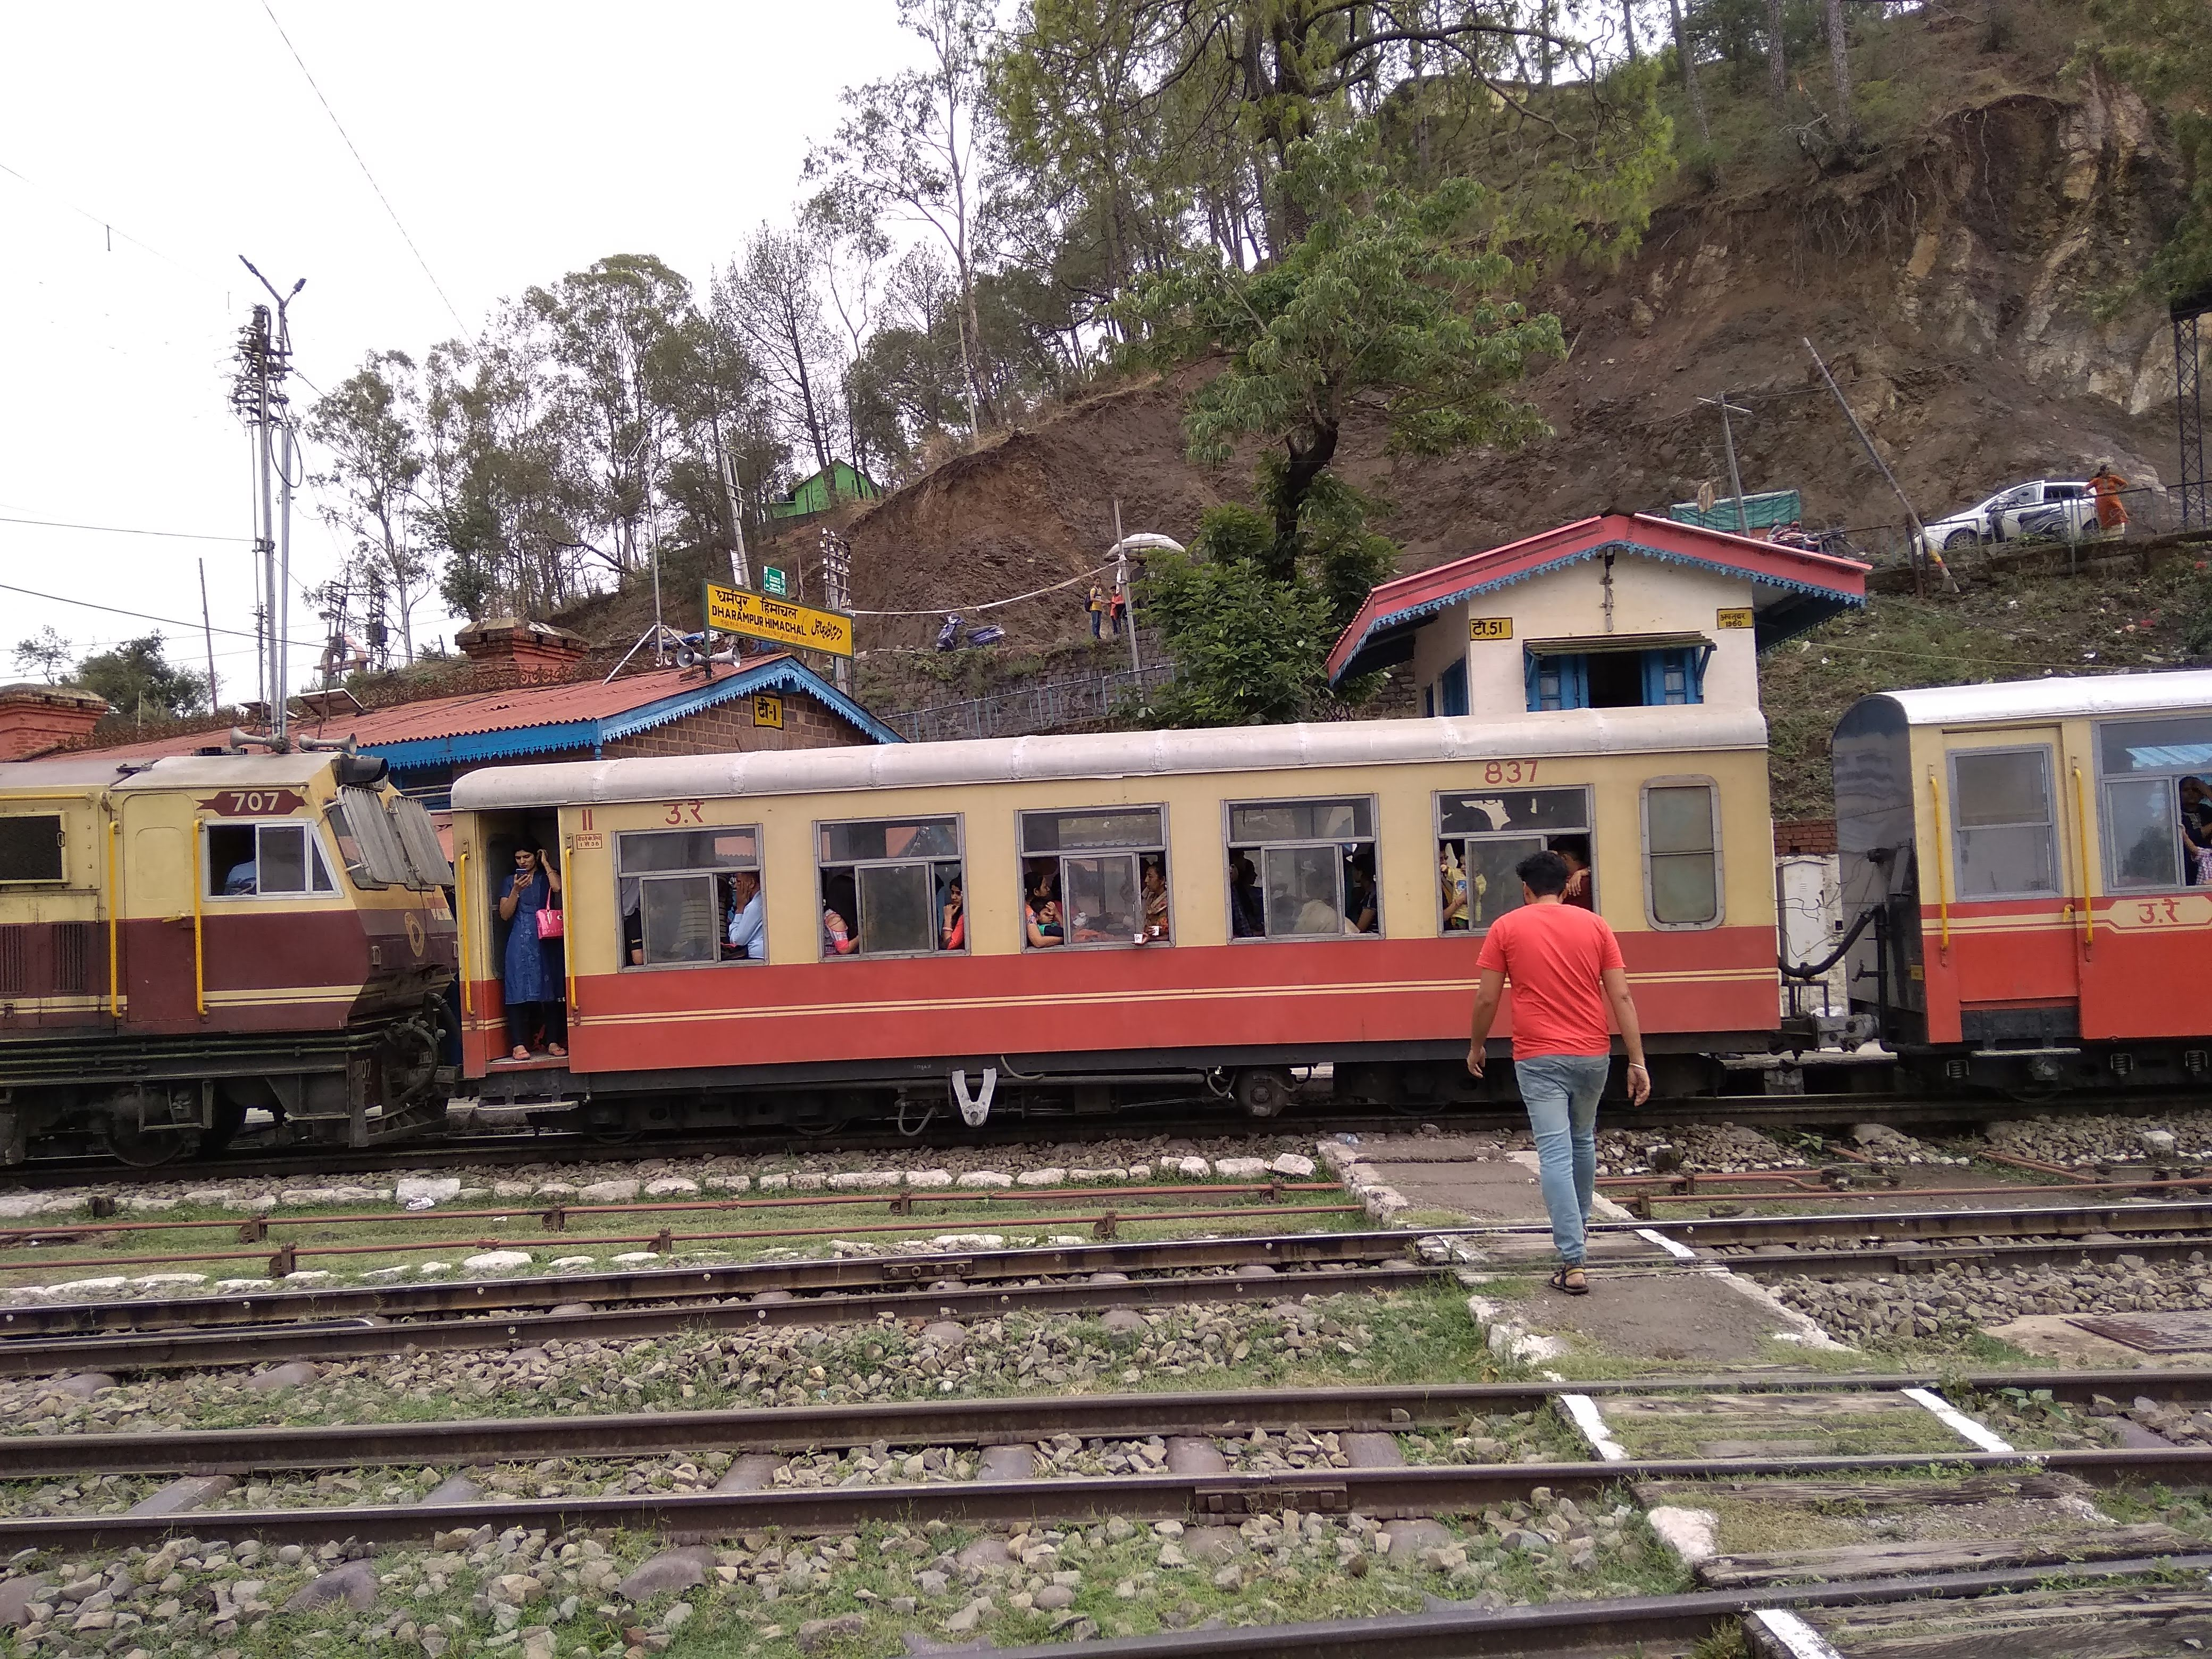 Toy Train Halted at Dharampur Railway station on Kalka Shimla Railway Routes